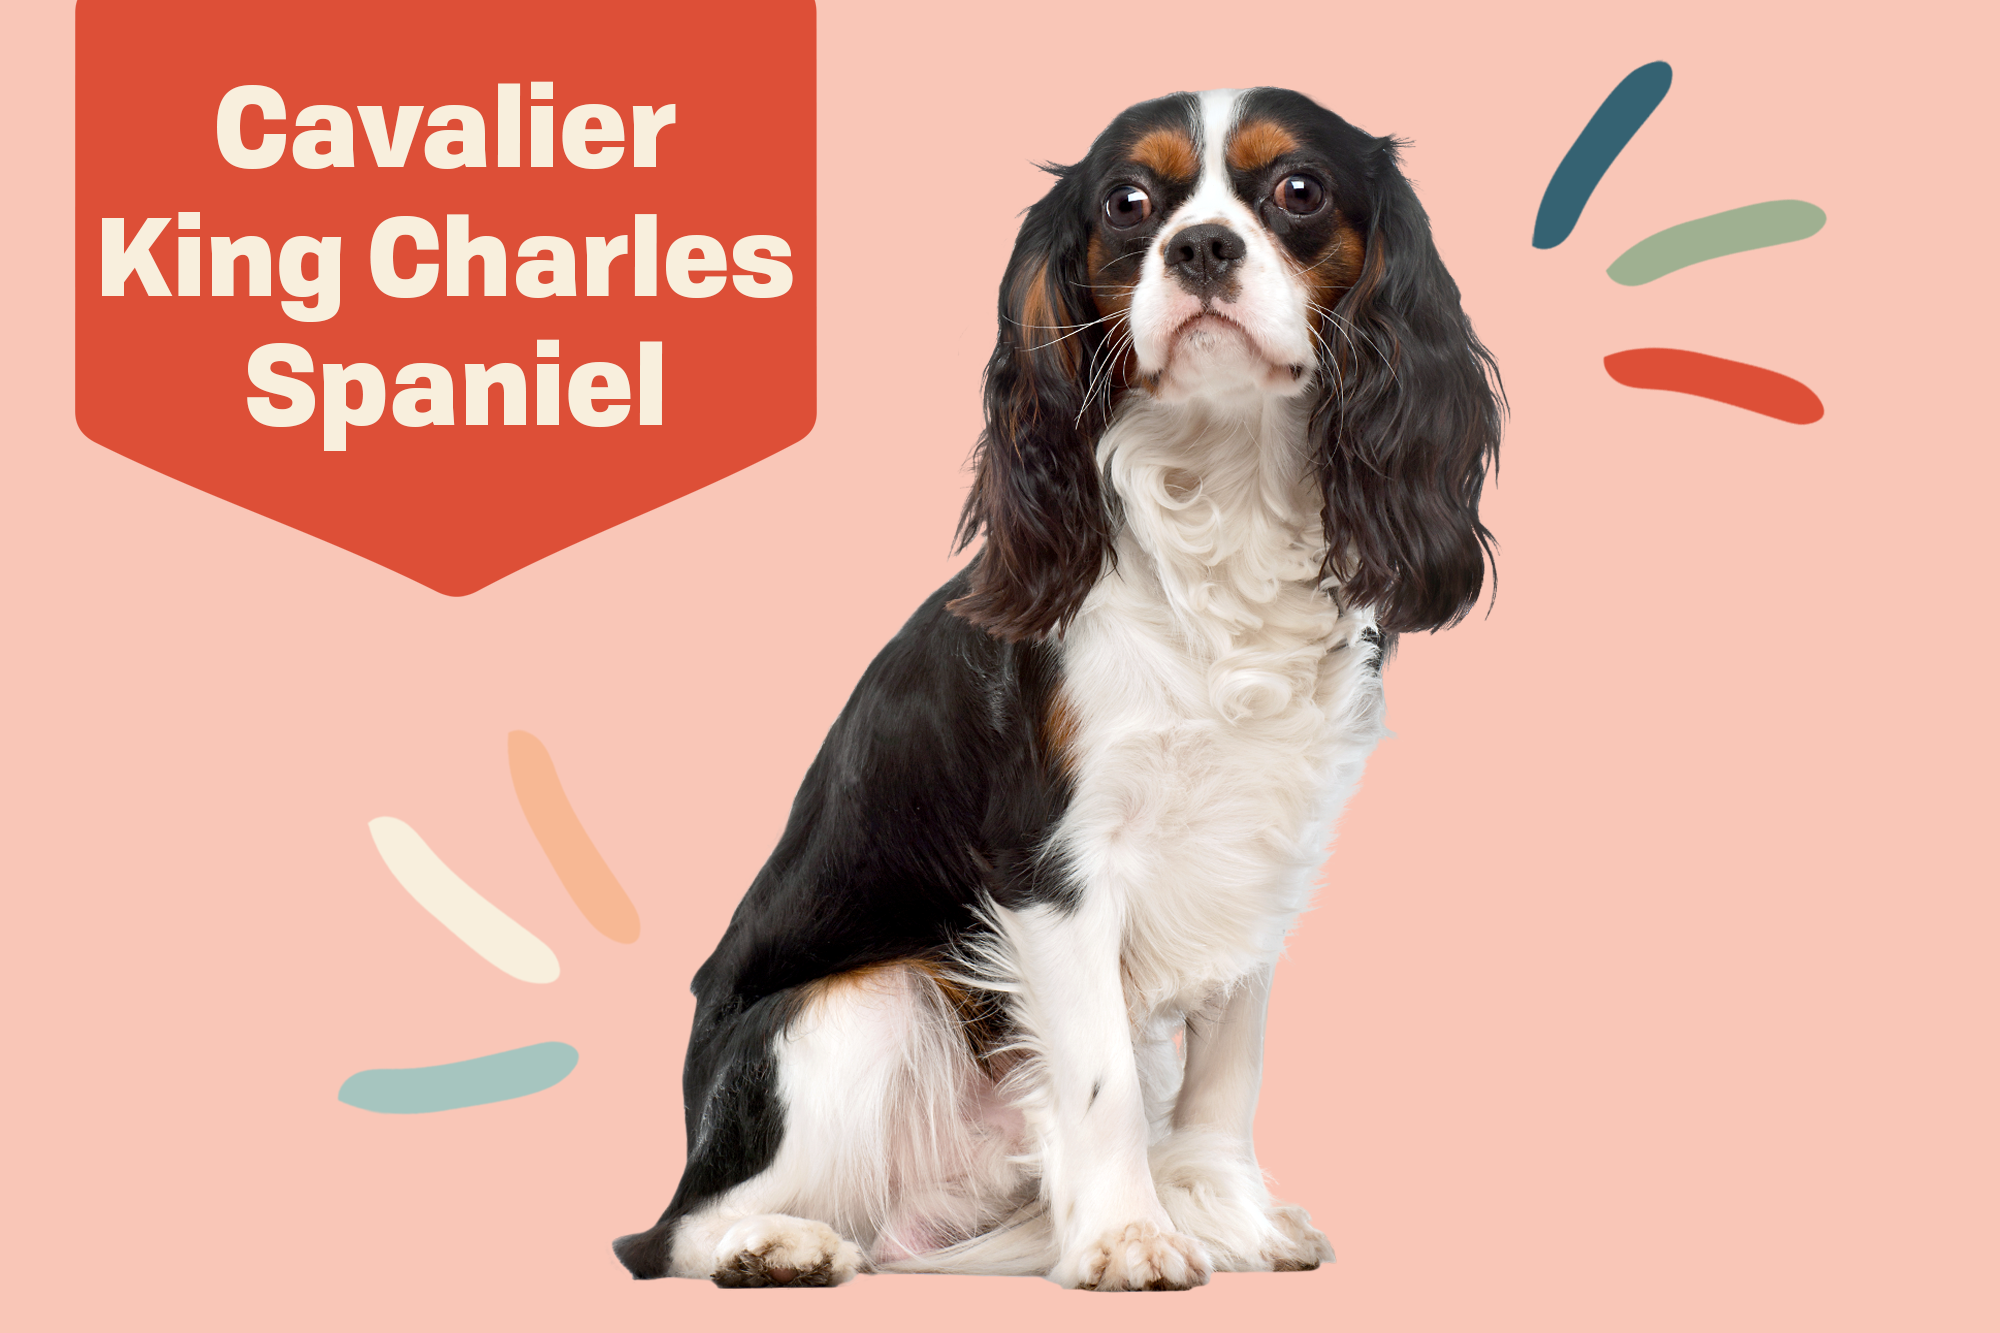 Cavalier King Charles Spaniel Breed Photo